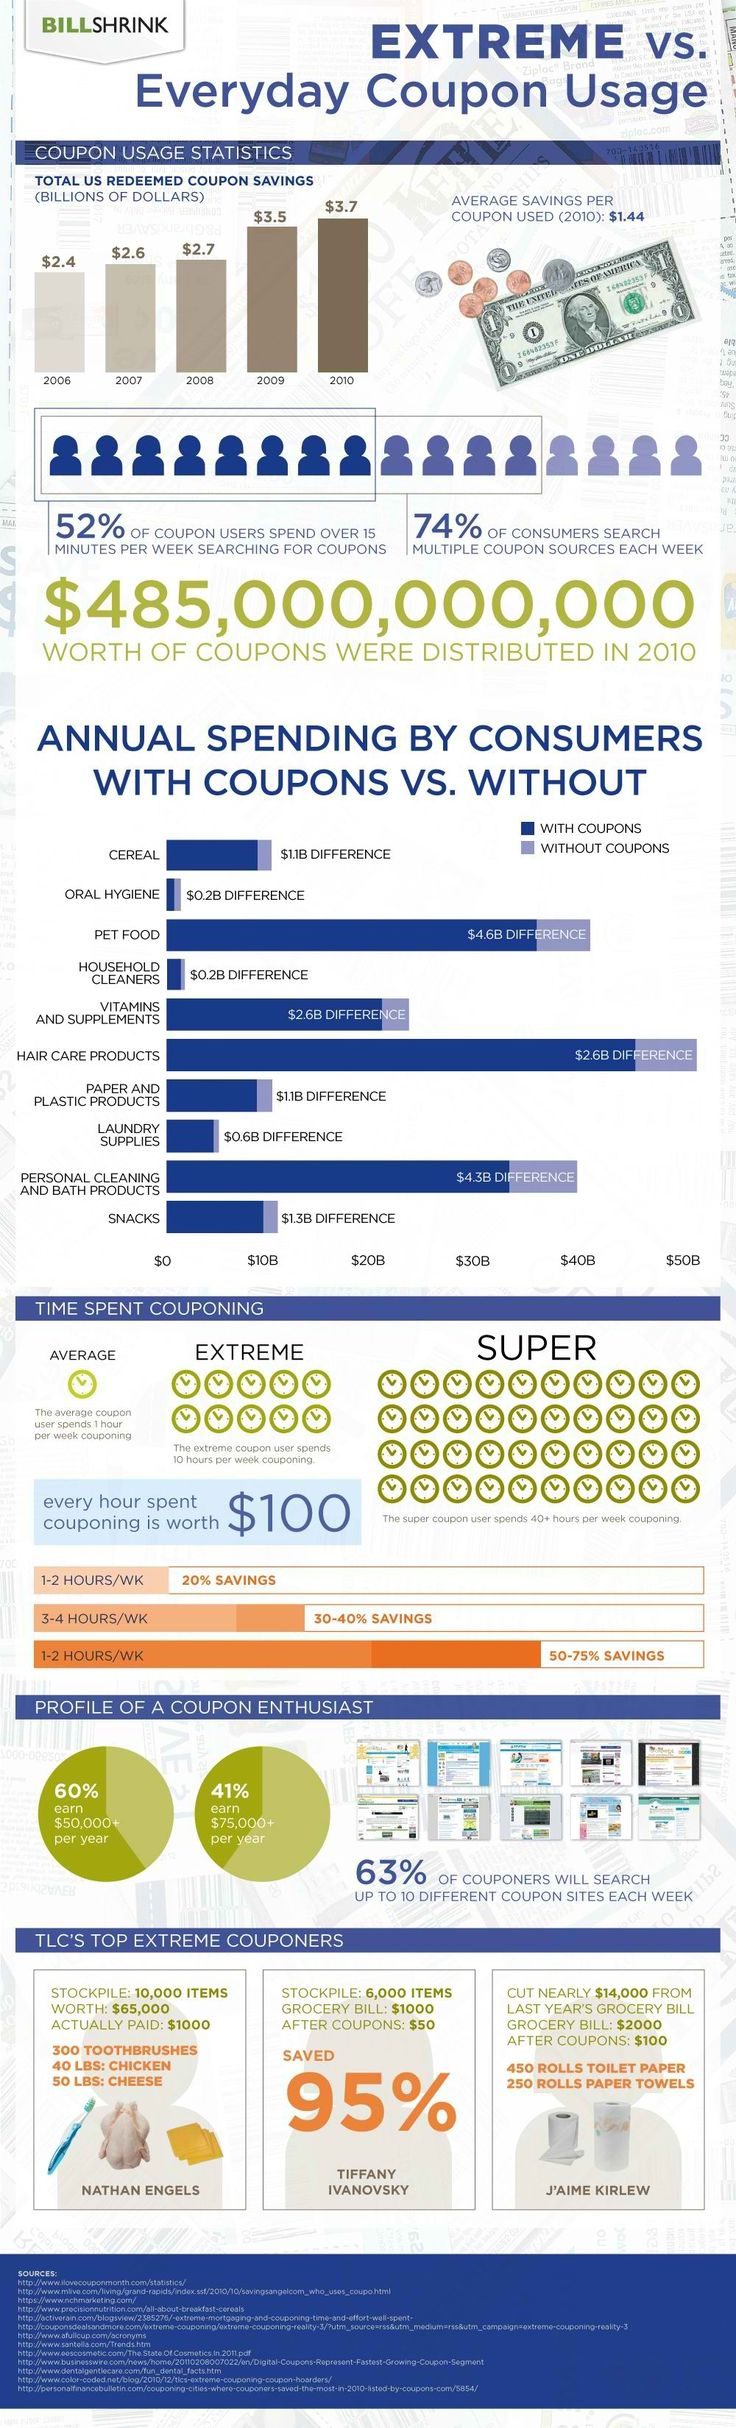 Extreme Couponing – InfoGraph. EVERY HOUR COUPONING AND PREPPING SAVES AN AVERAGE OF $100!! Not too many jobs pay $100 an hour!!